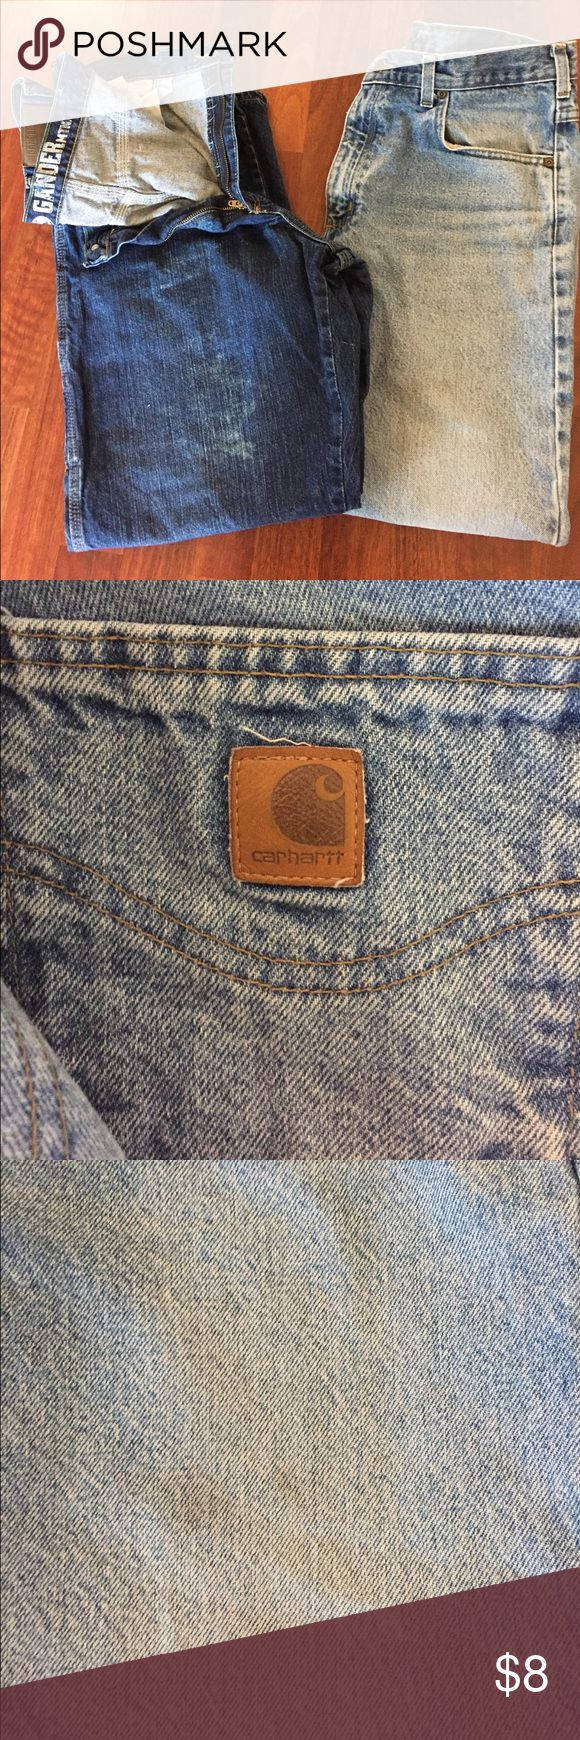 Men's 36x30 jeans Darker pair (Gander Mt) is free of stains. Lighter pair has a stain that is shown in picture; its Carhart. Jeans Straight